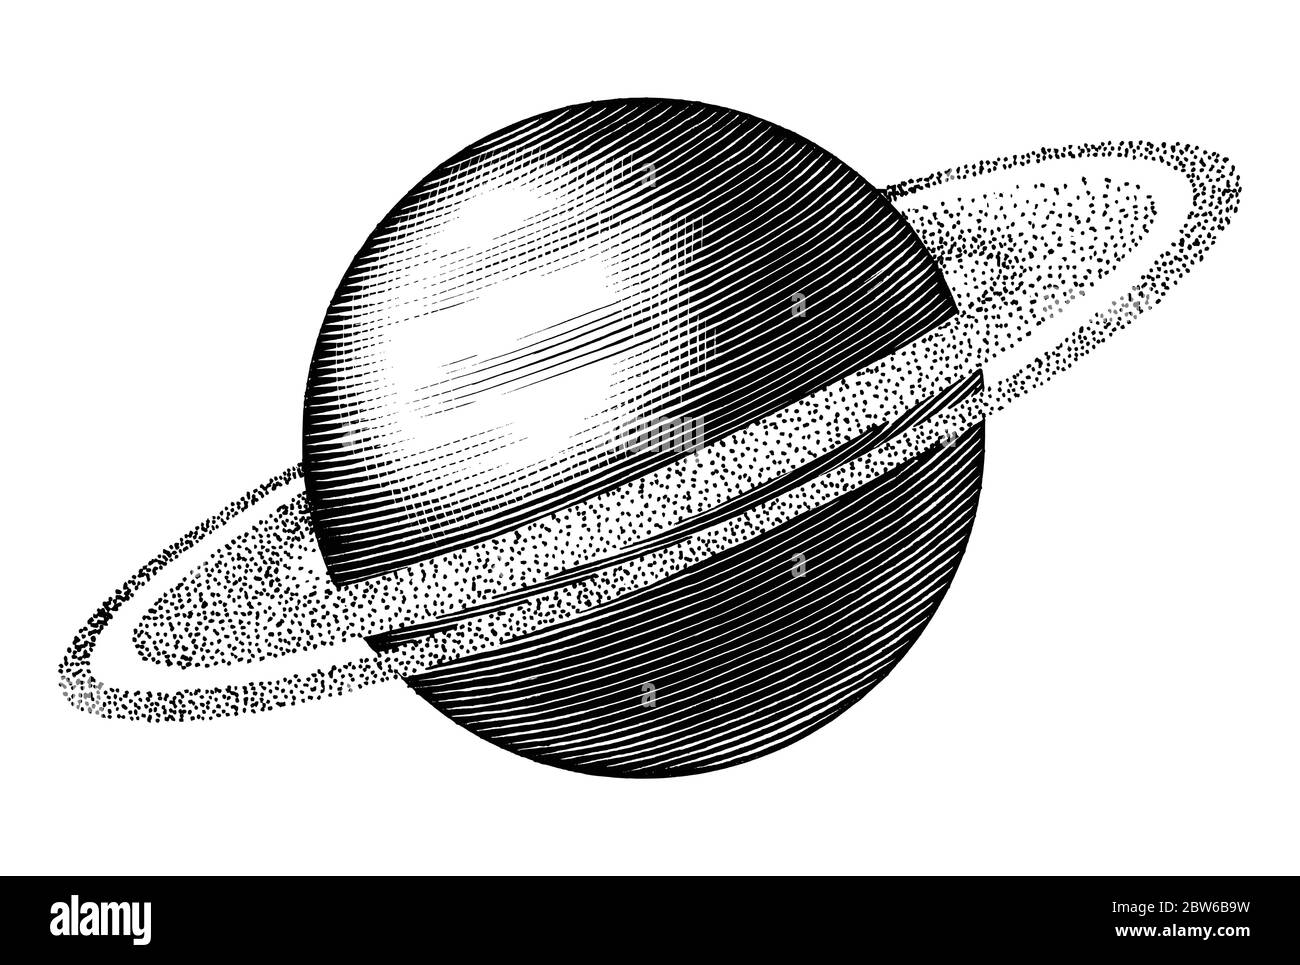 Saturn hand drawing vintage style black and white clipart isolated on white background. The sixth planet from the Sun Stock Vector